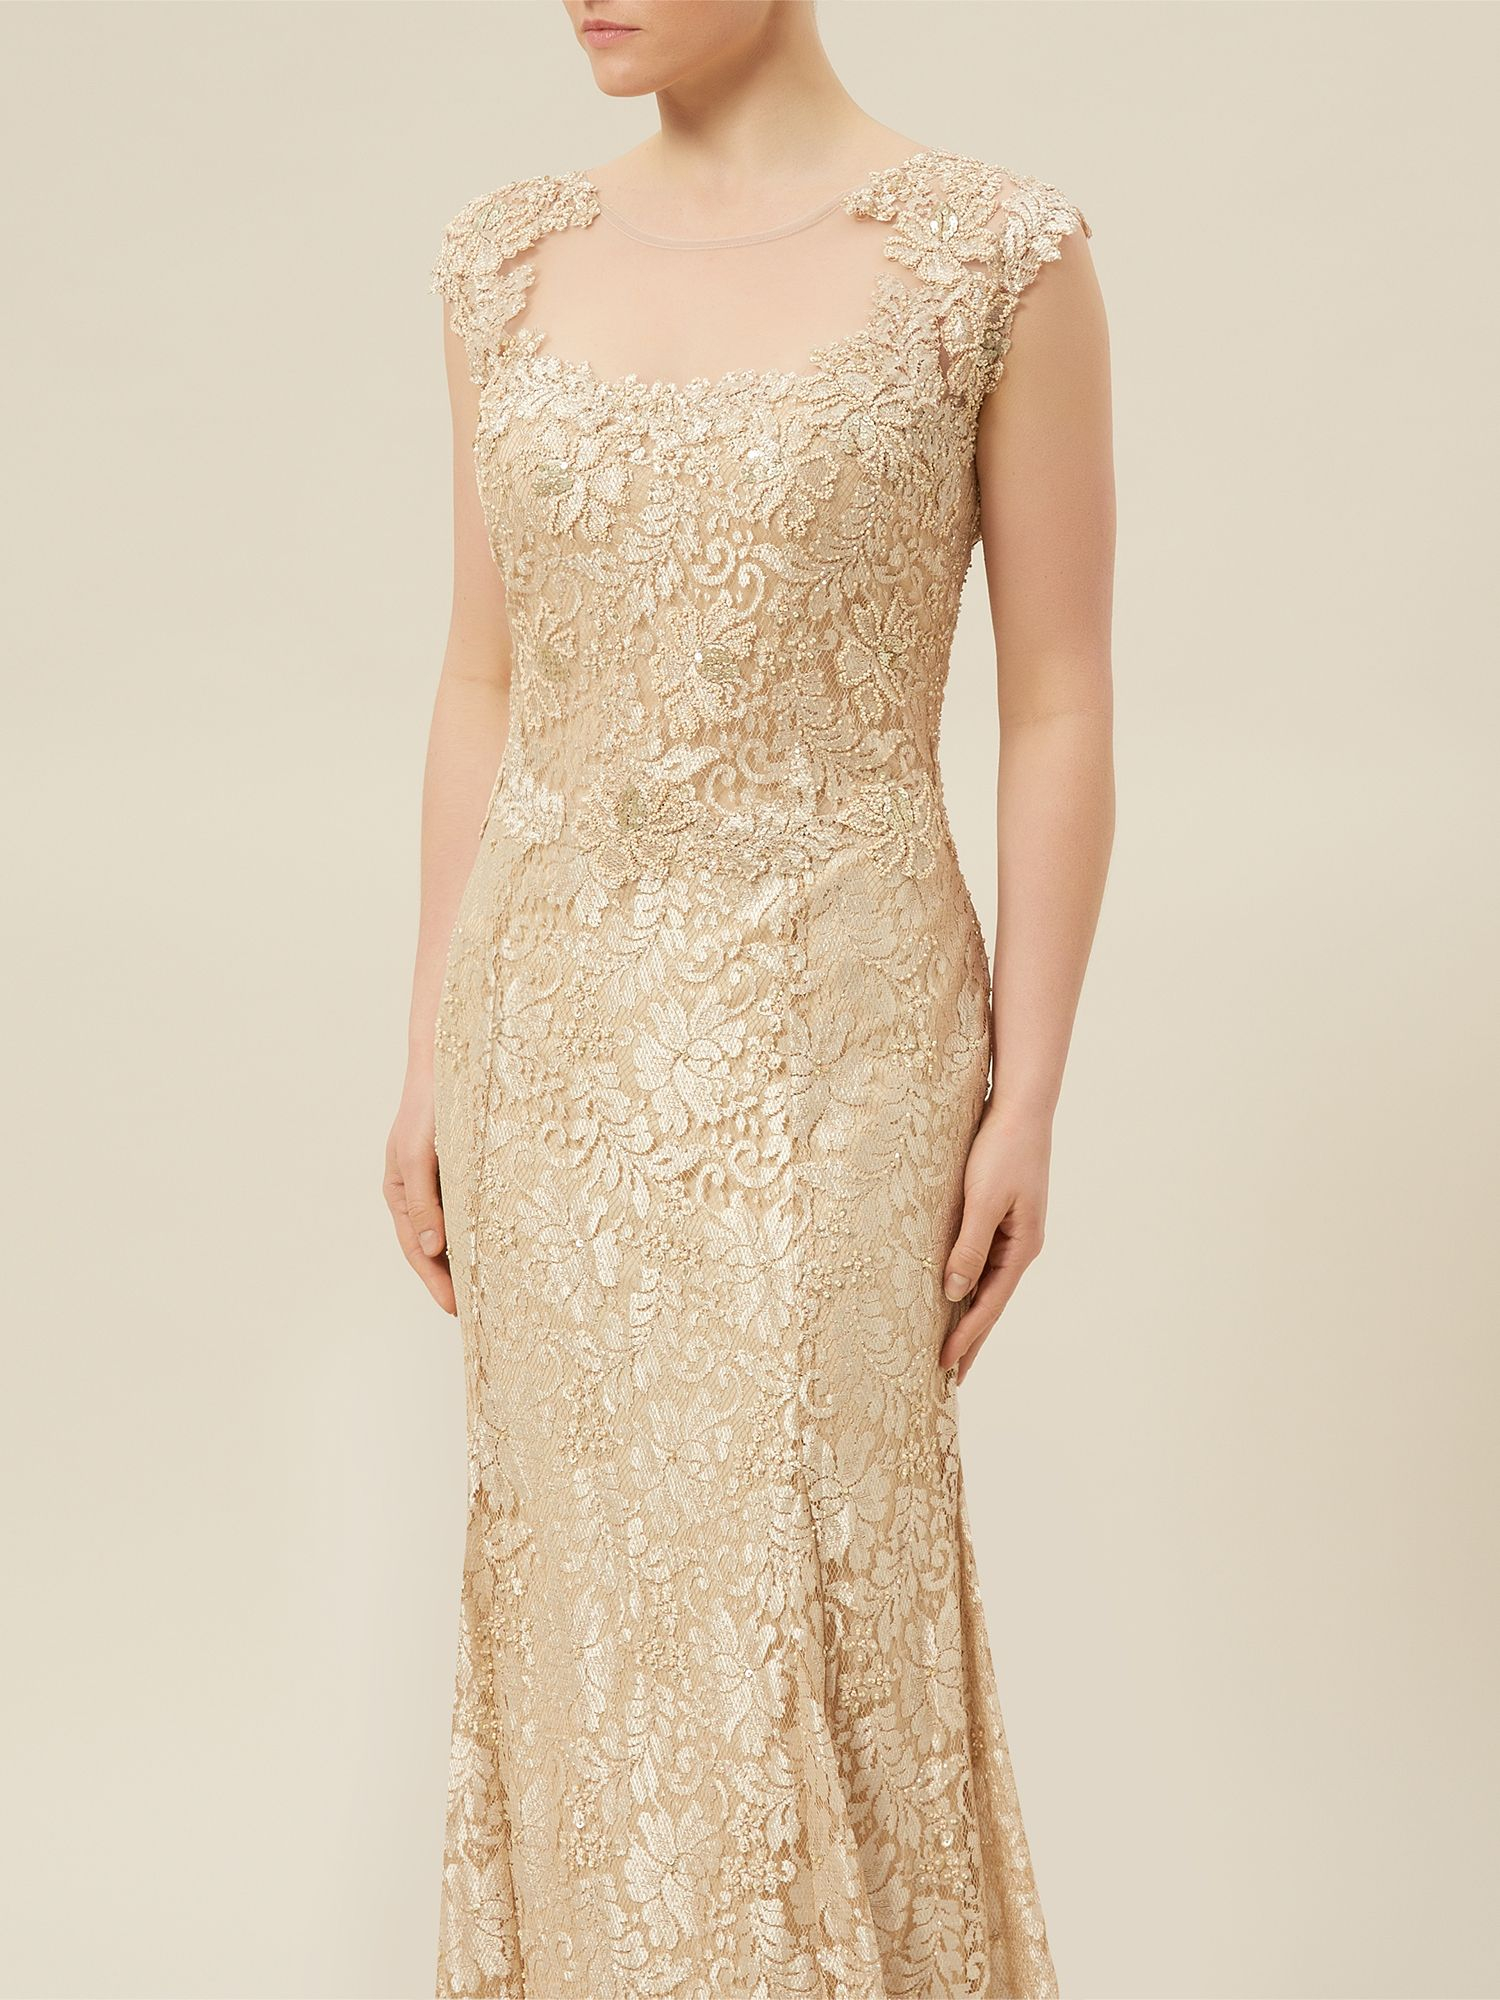 jacques vert lace beaded evening dress in gold neutral